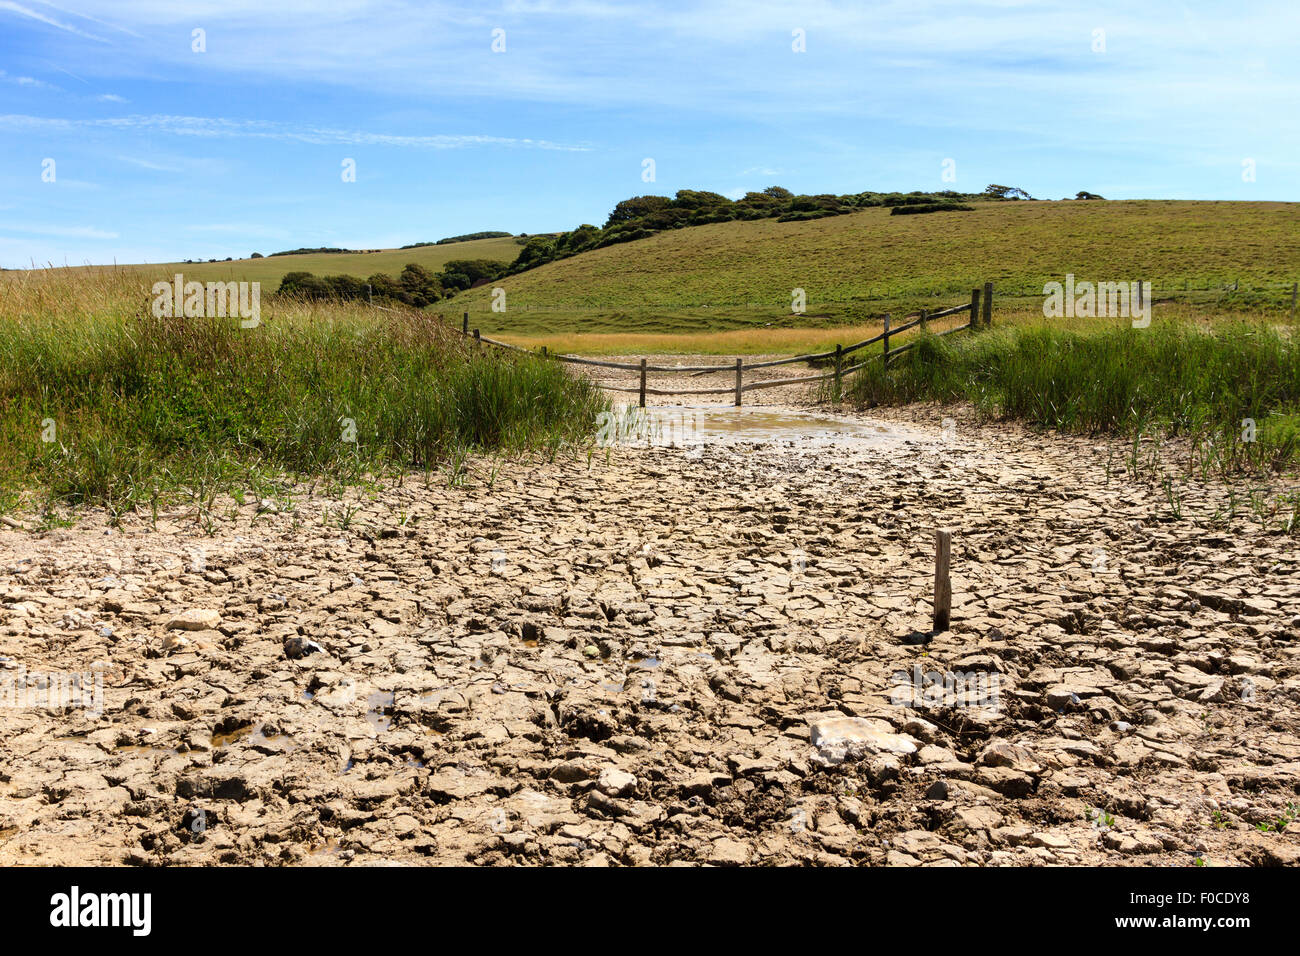 Cracked, dried out earth at Cuckmere Haven, East Sussex, England, UK - Stock Image